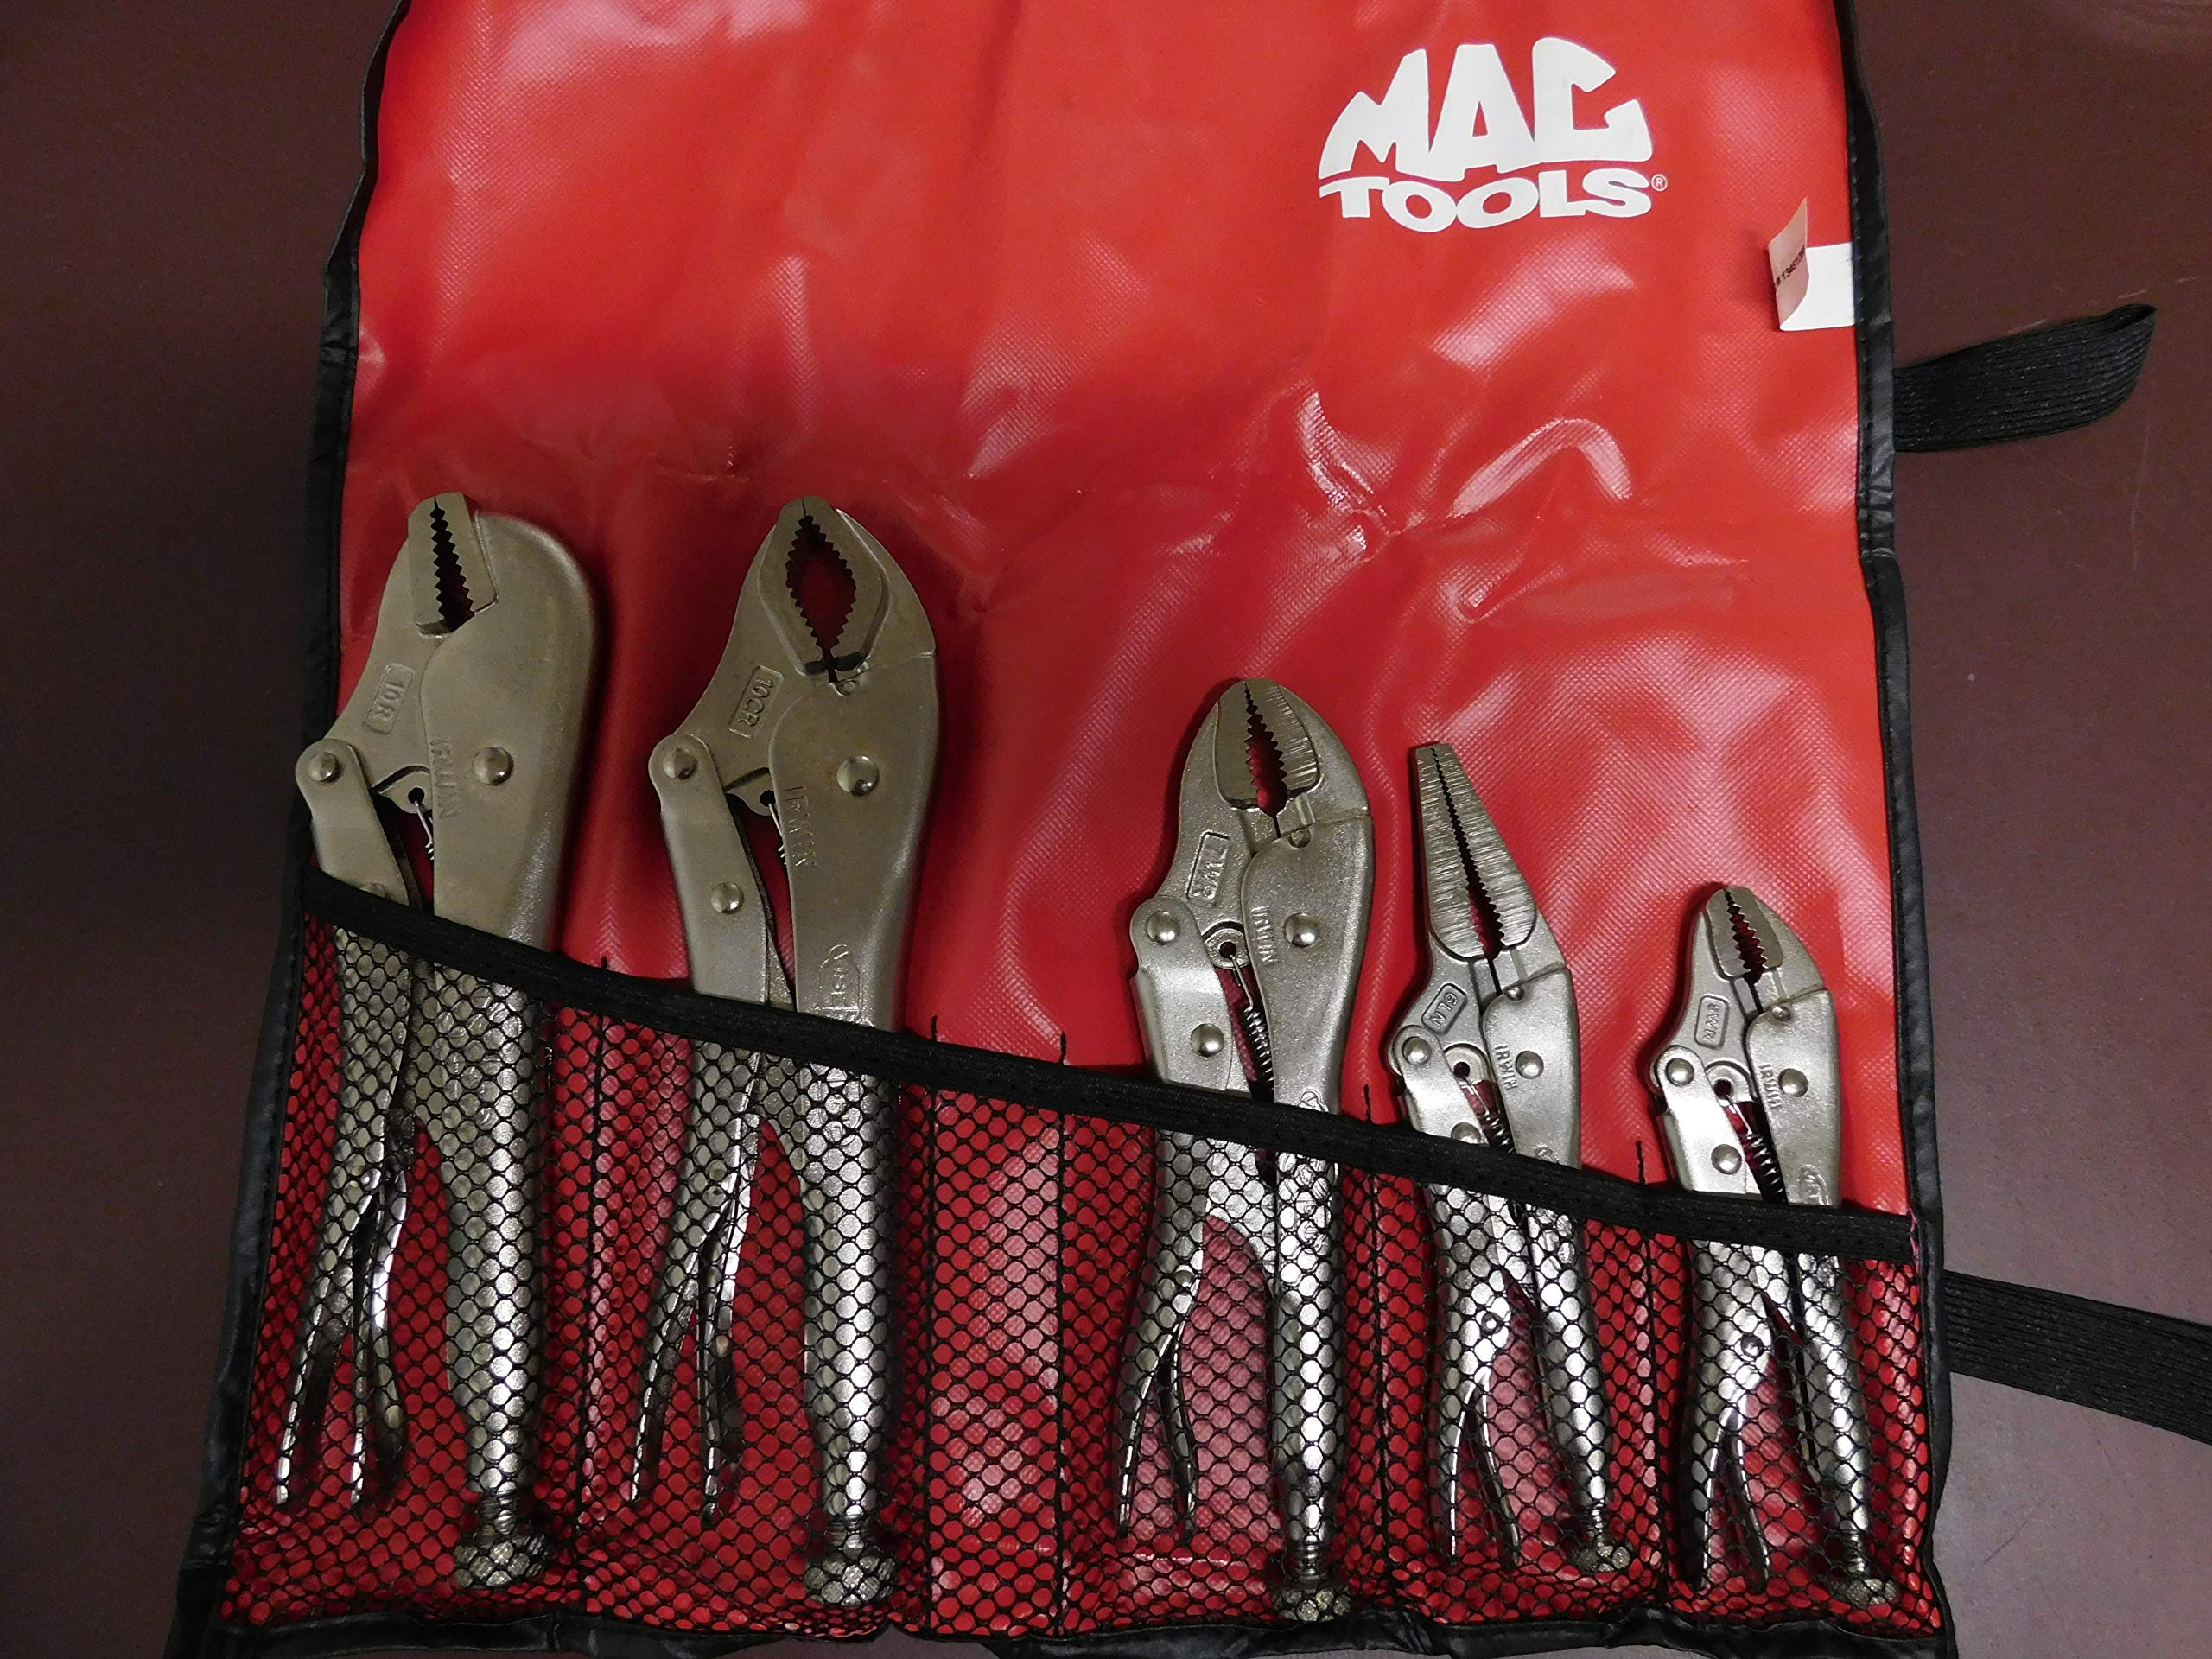 Mac Tools 5 Piece Vise Grip Set Made By Irwin with Mac Tools Pouch, Part #68MT by Mac Tools